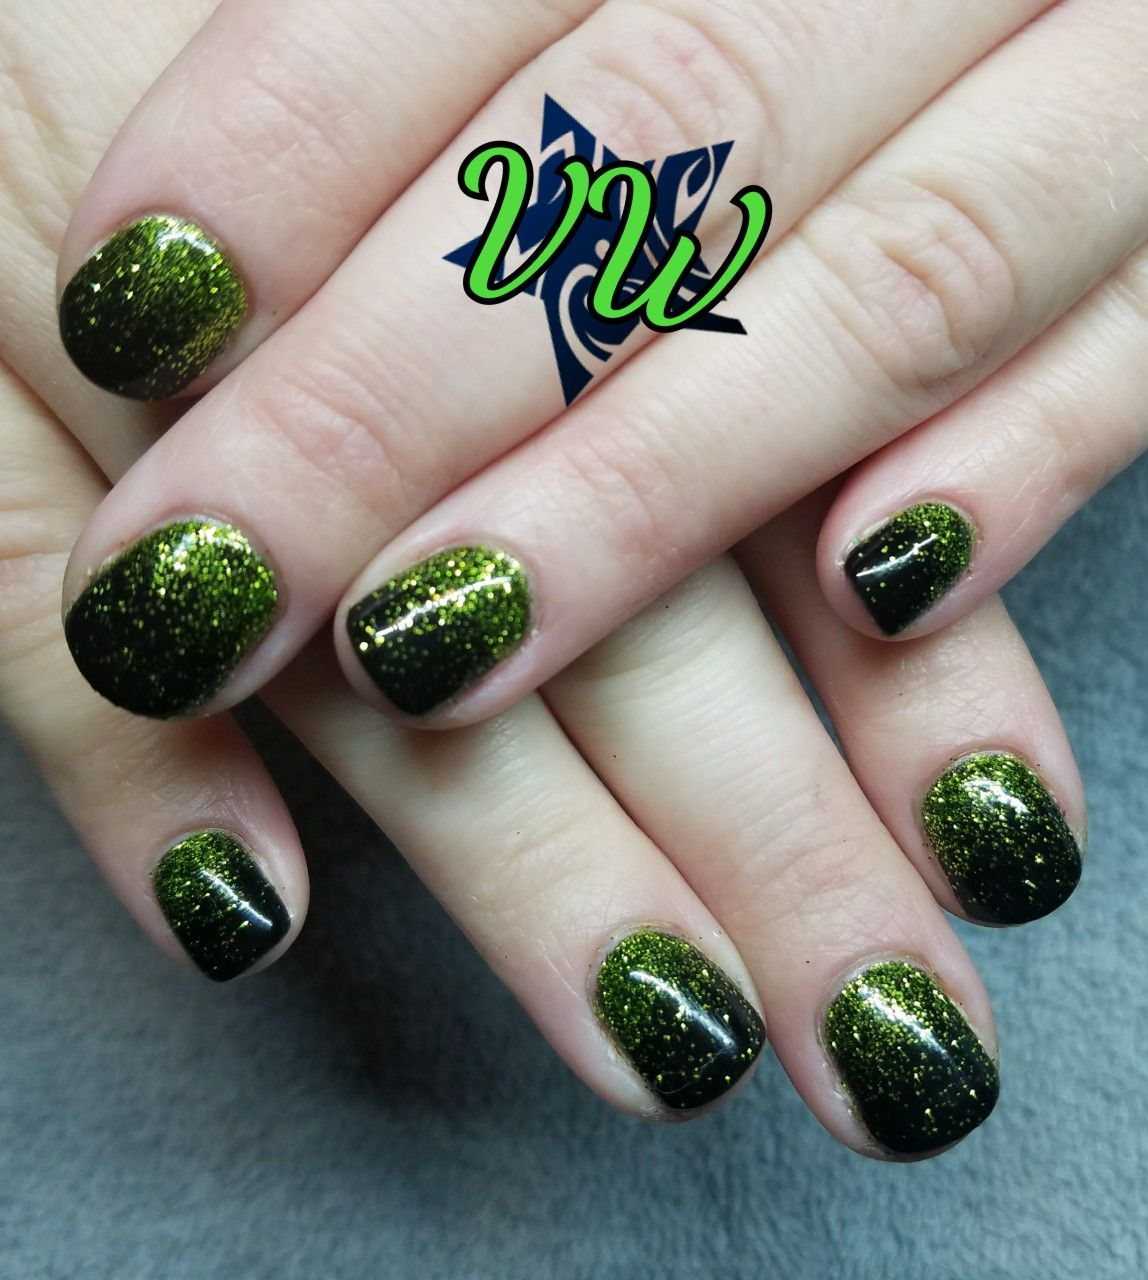 Black gel polish manicure with lime green glitter